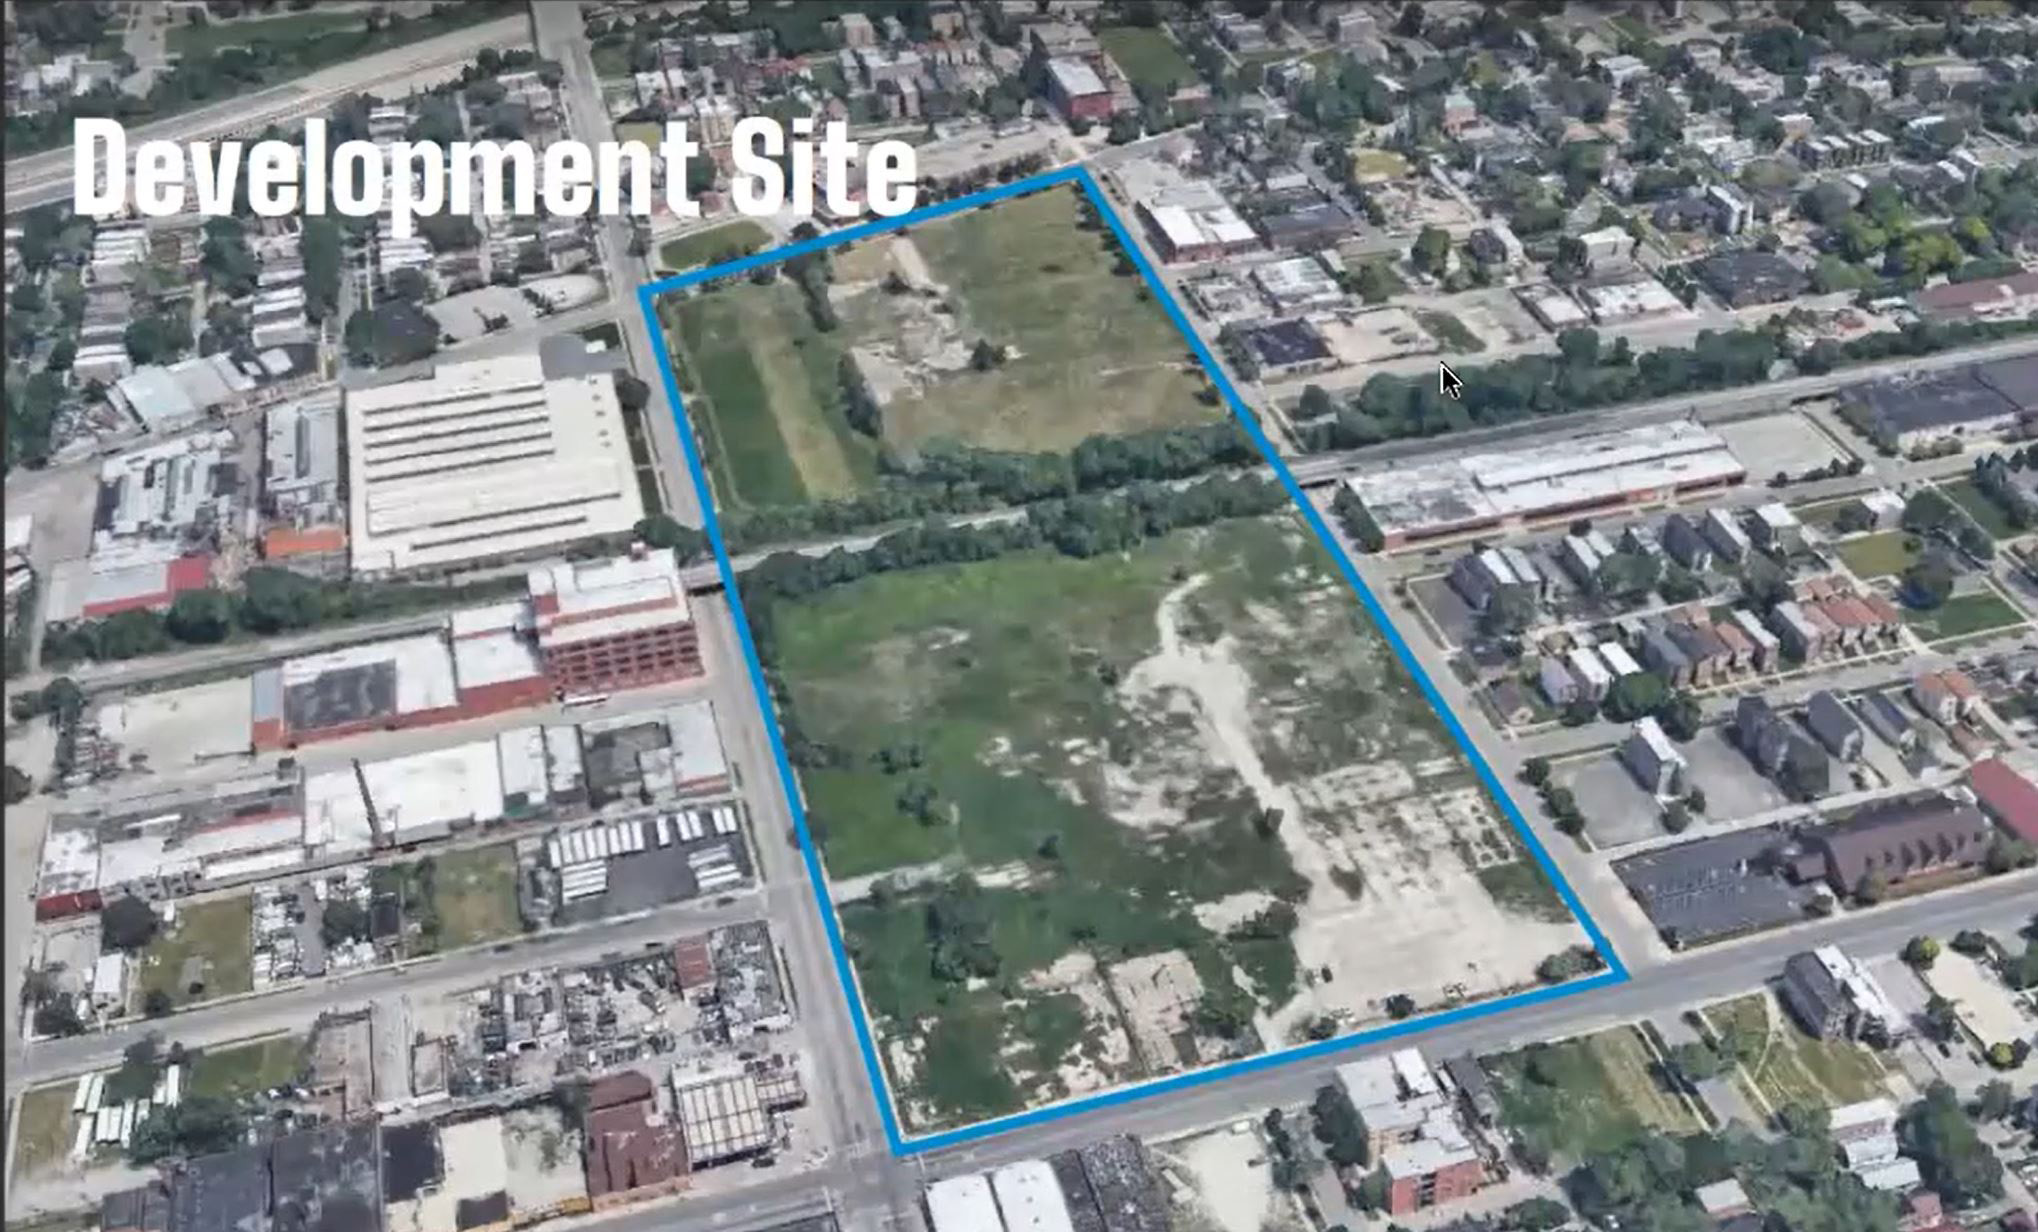 4300 W Roosevelt Development Site. Image by DPD